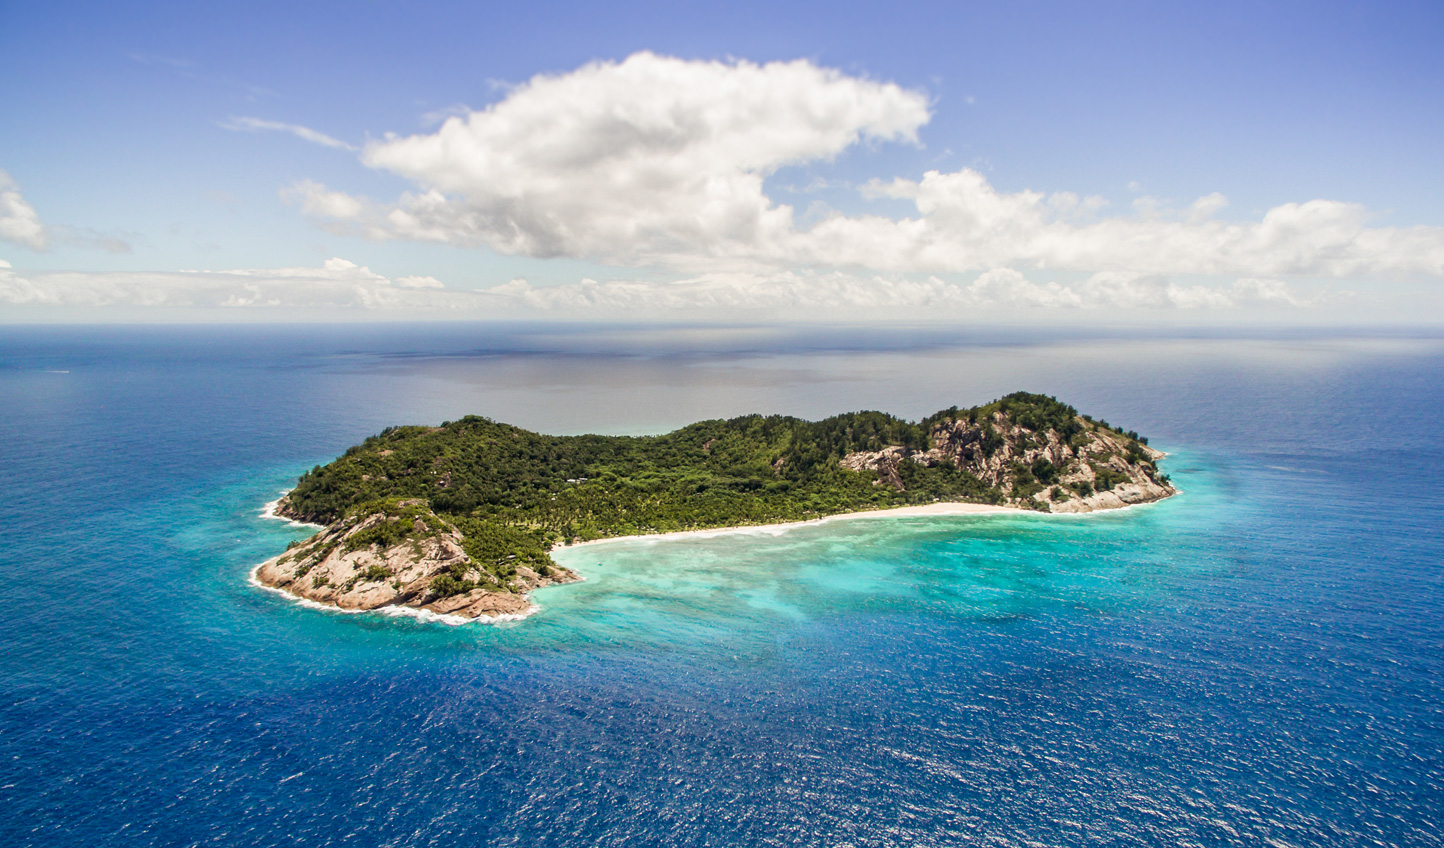 Your island paradise awaits at North Island